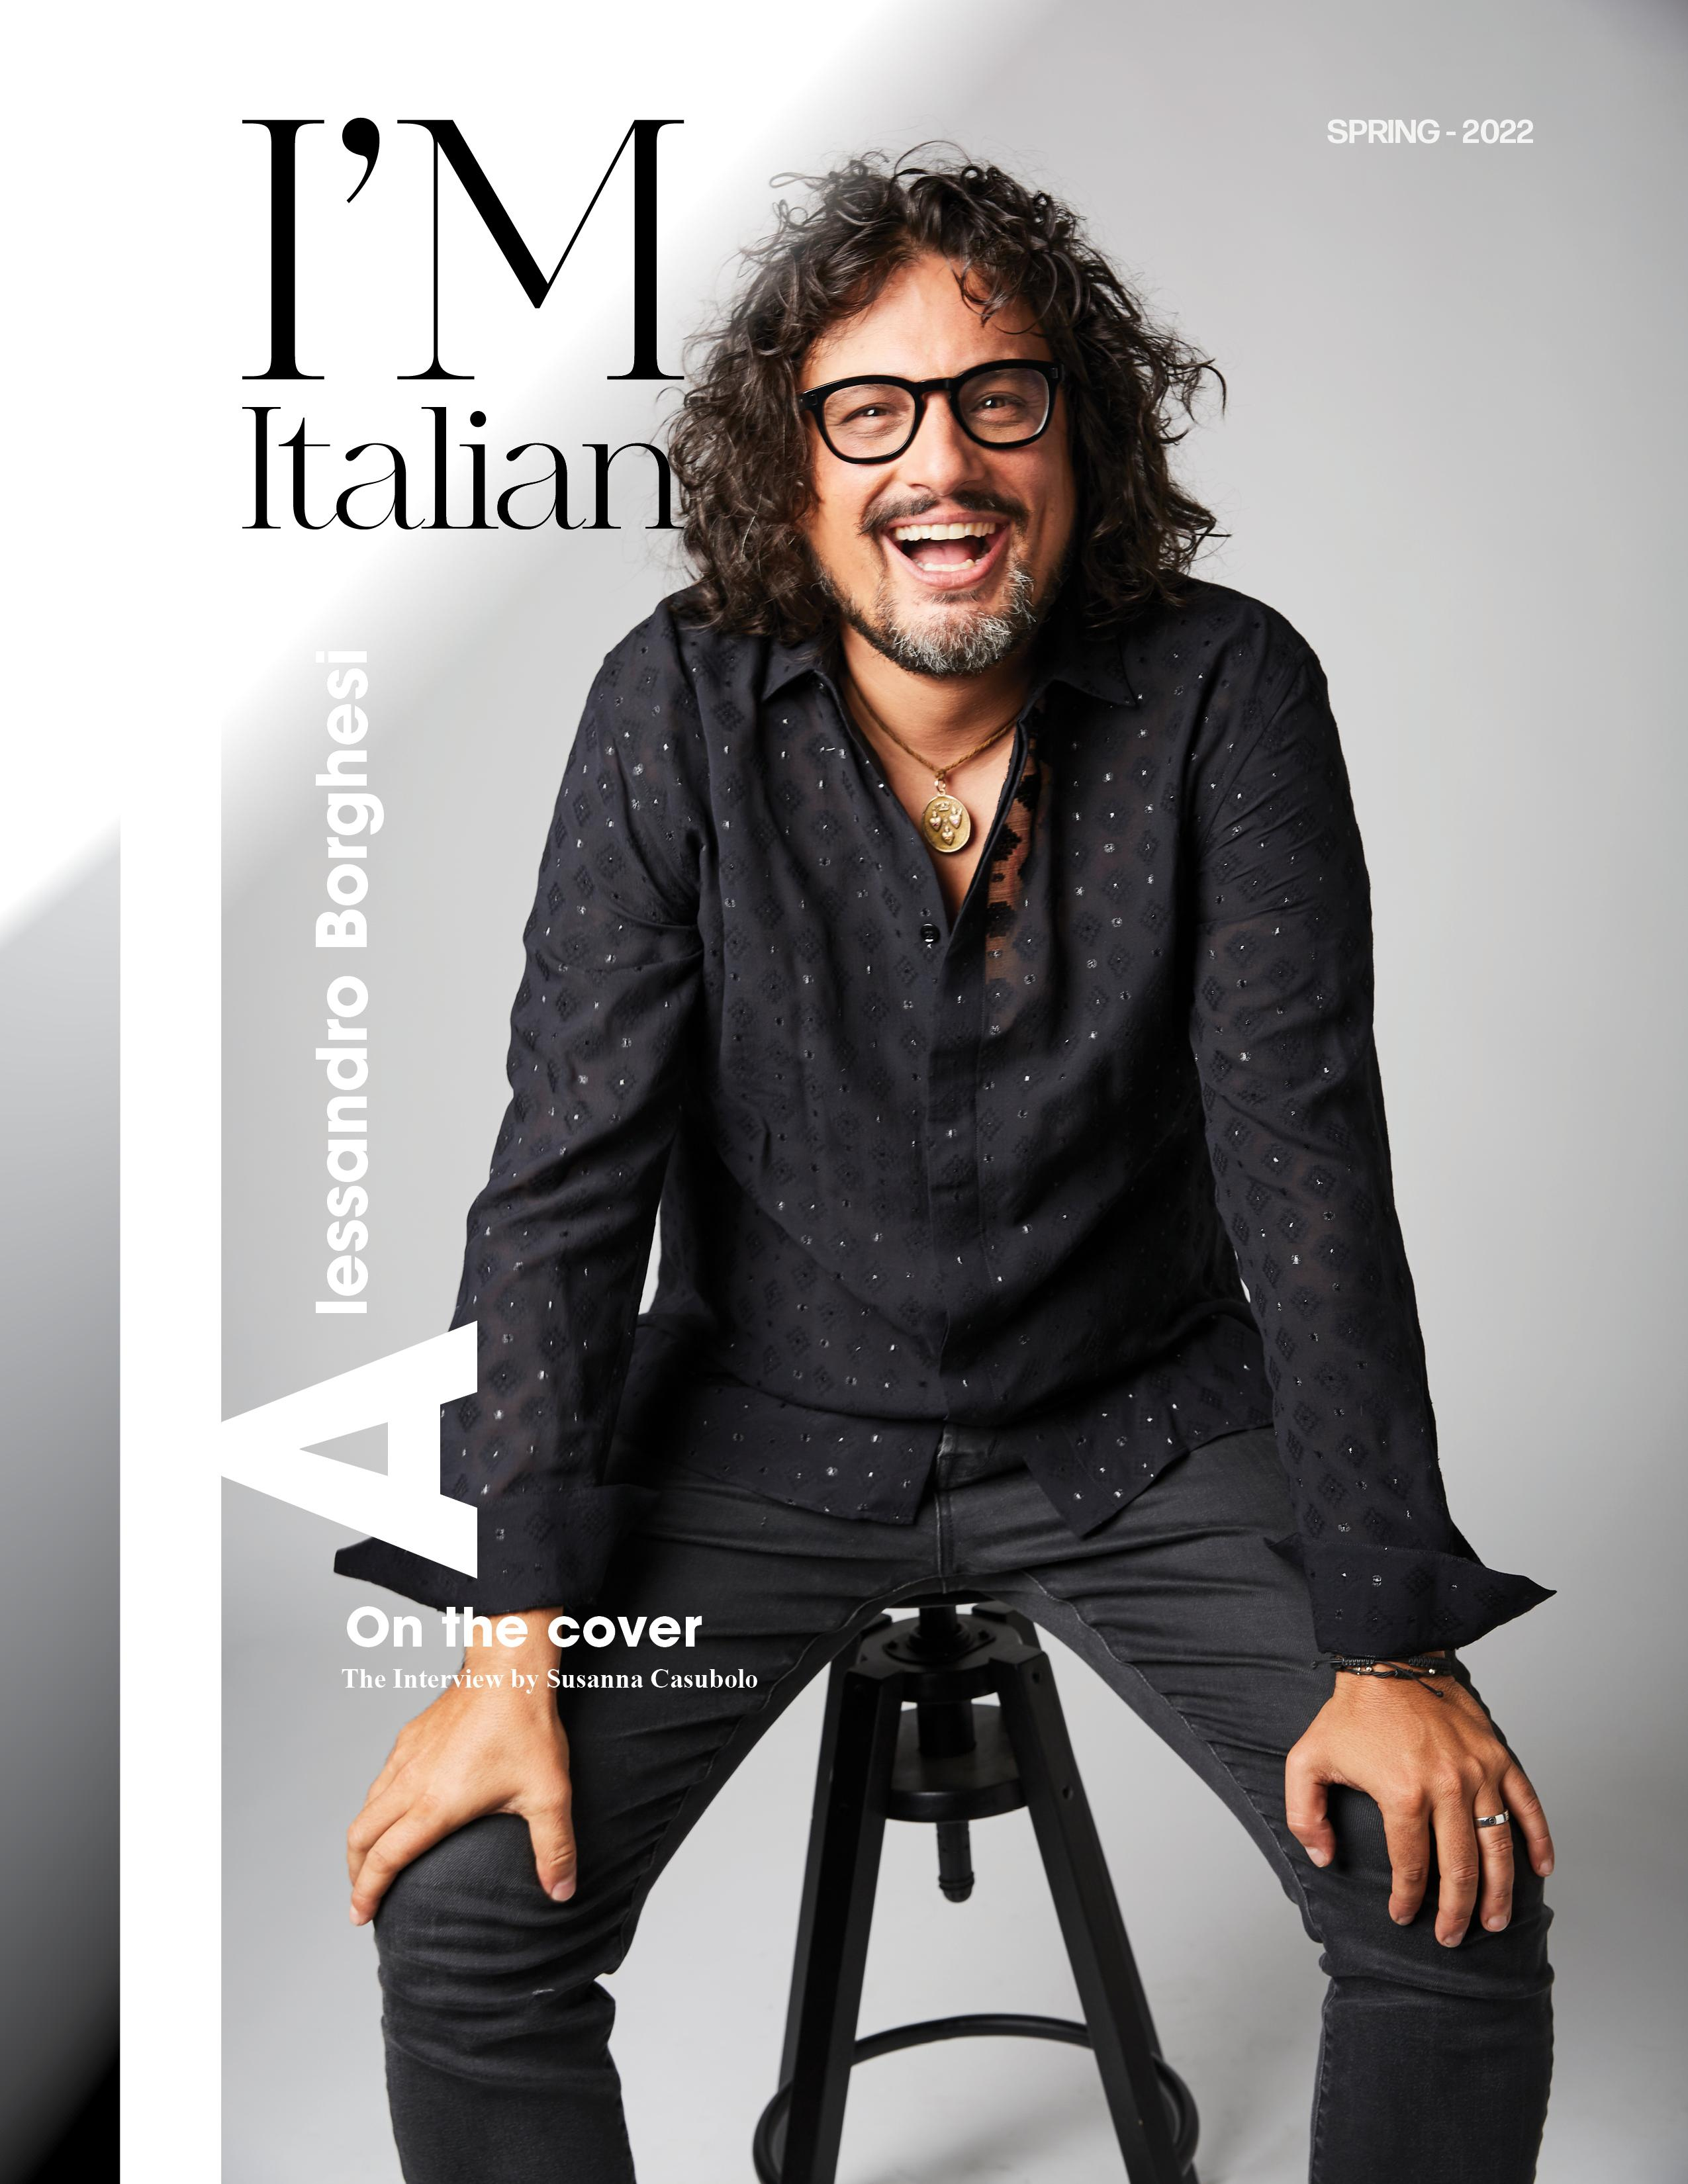 I'M Italian Magazine Subscription Cover